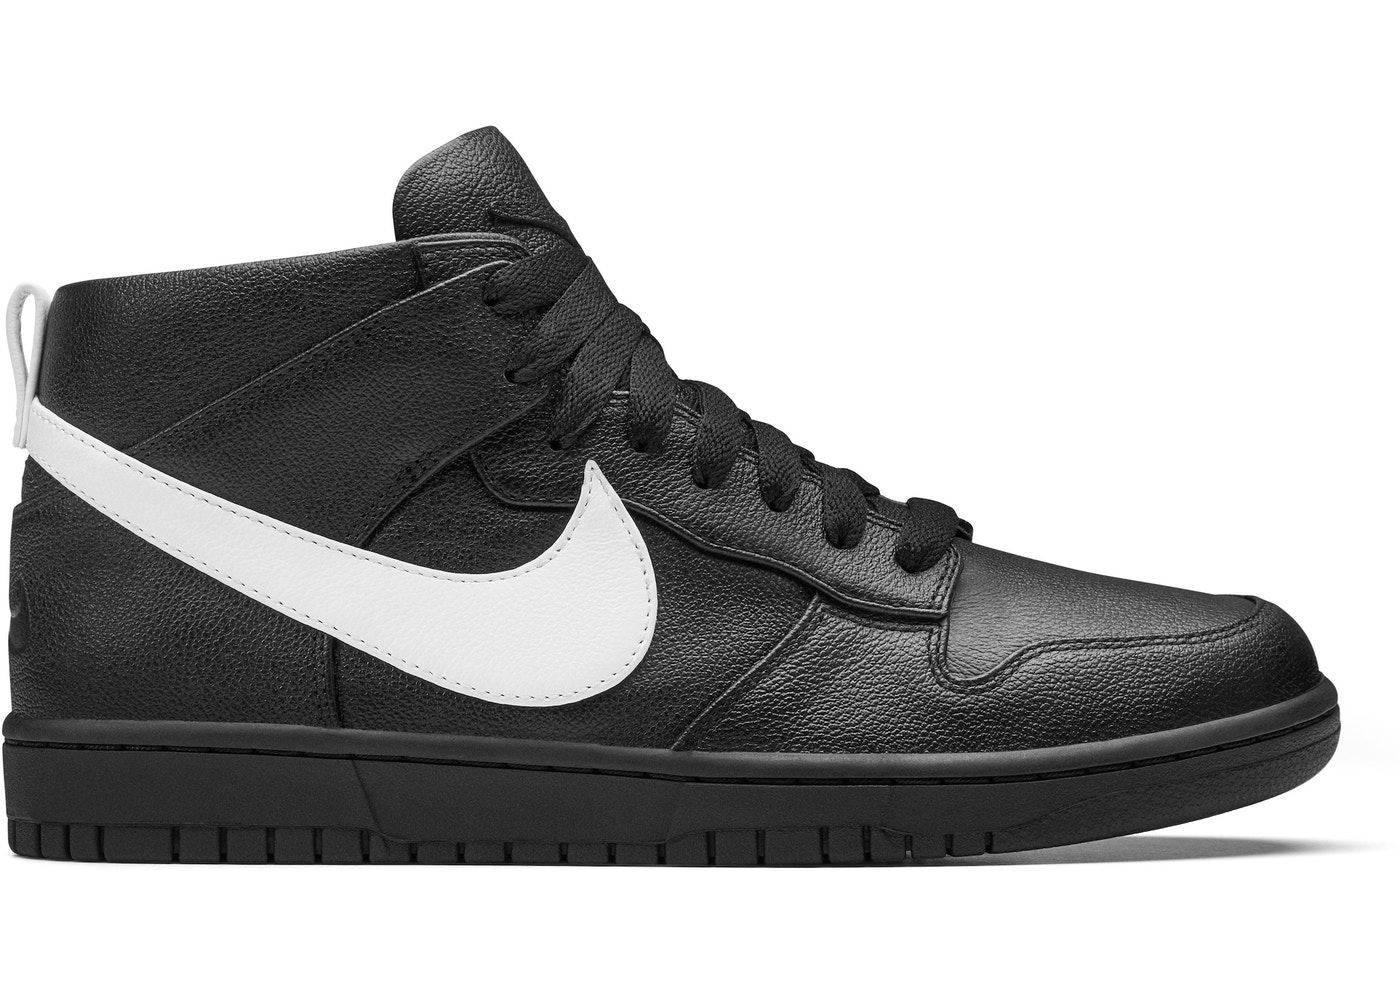 wholesale dealer 49fe8 933fa Nike Dunk Lux Chukka Riccardo Tisci Black - 910088-001